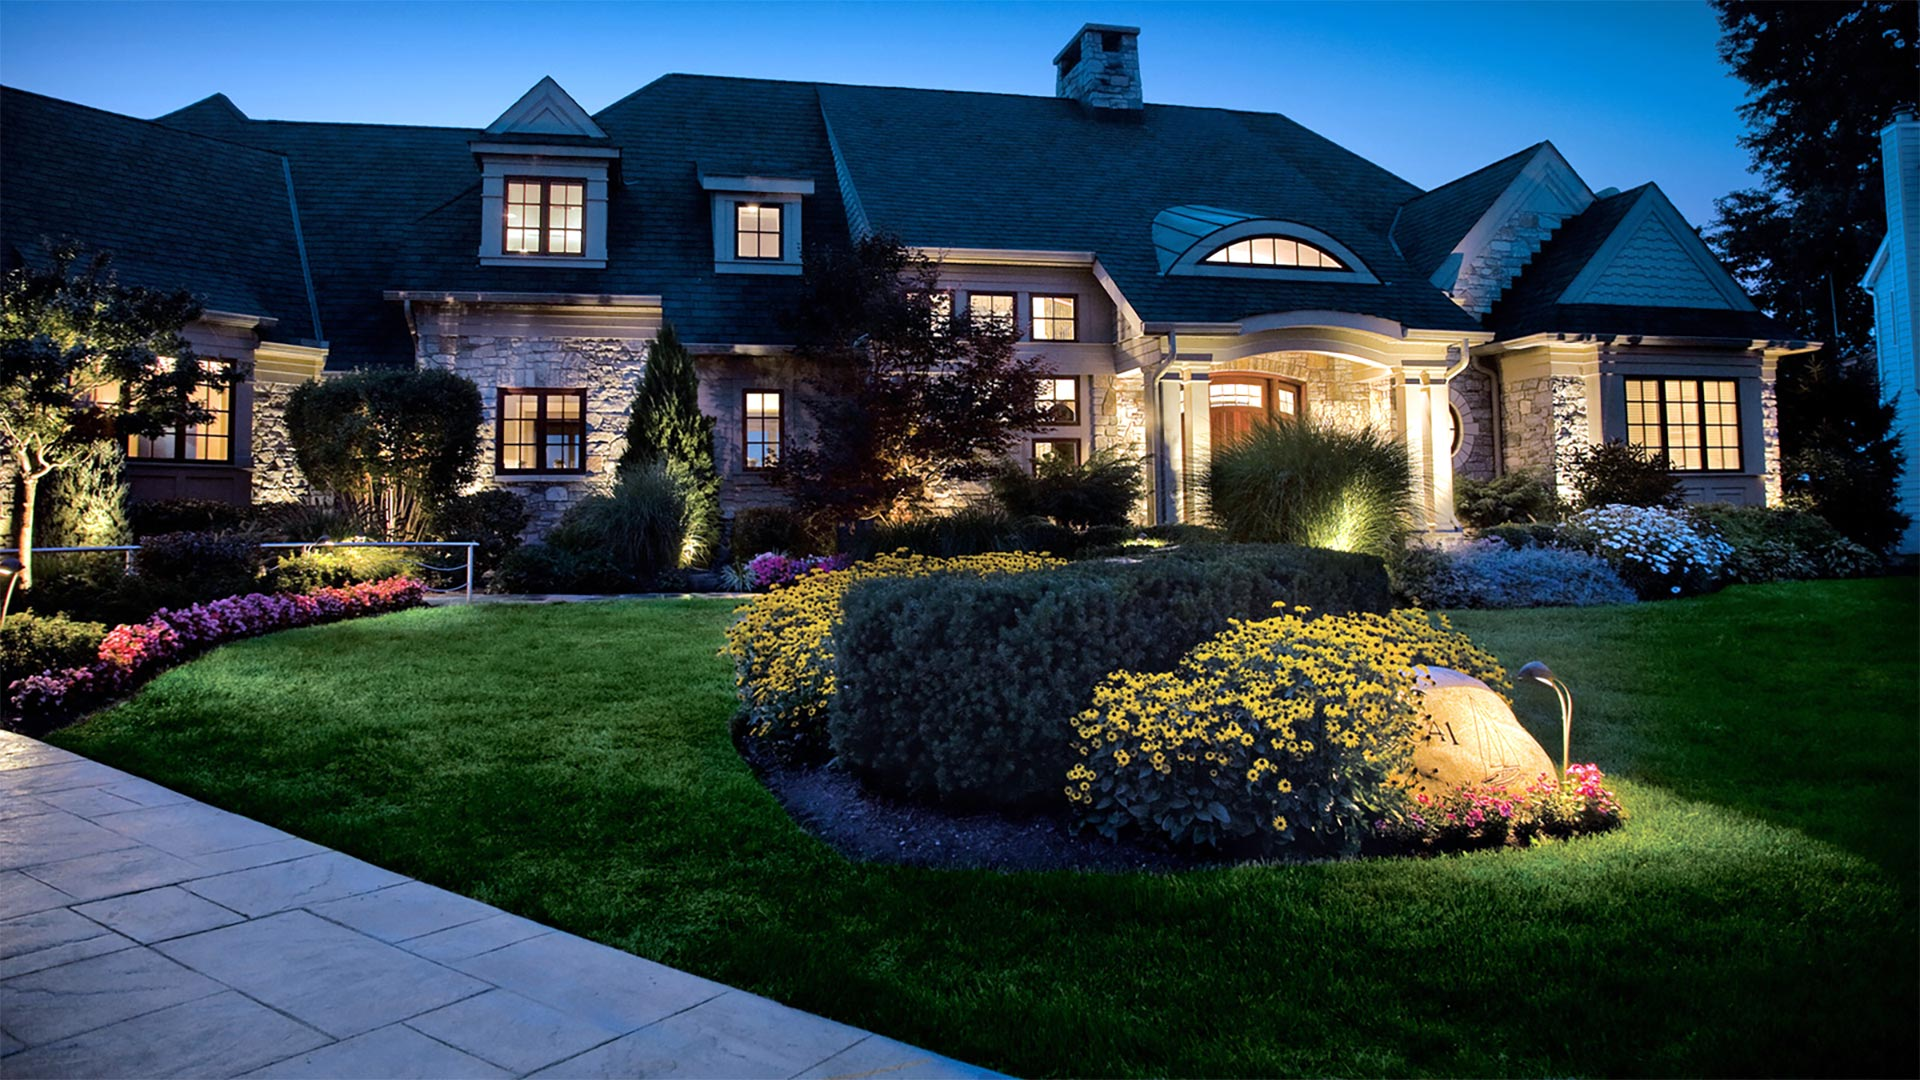 A home with outdoor lighting and landscaping in Adel, IA.